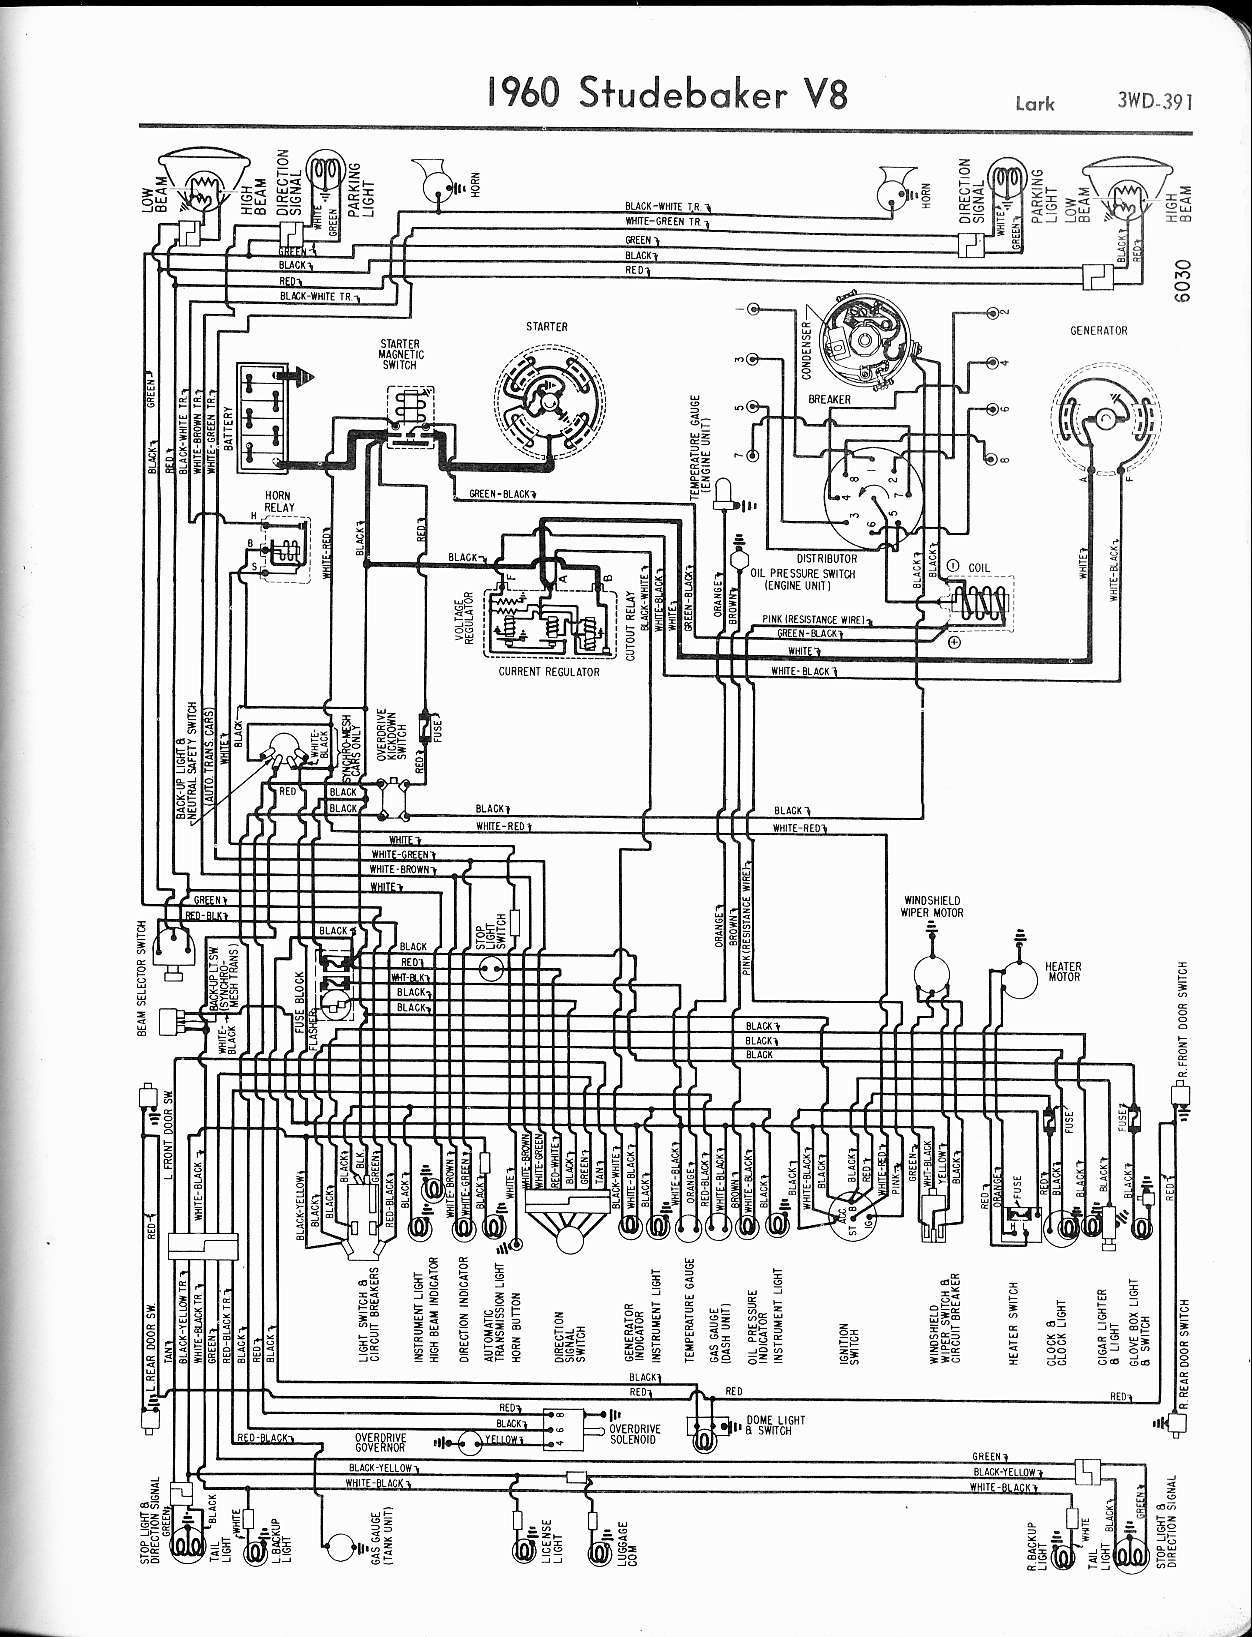 55 studebaker wiring diagram studebaker wiring diagrams - the old car manual project 1951 studebaker wiring diagram